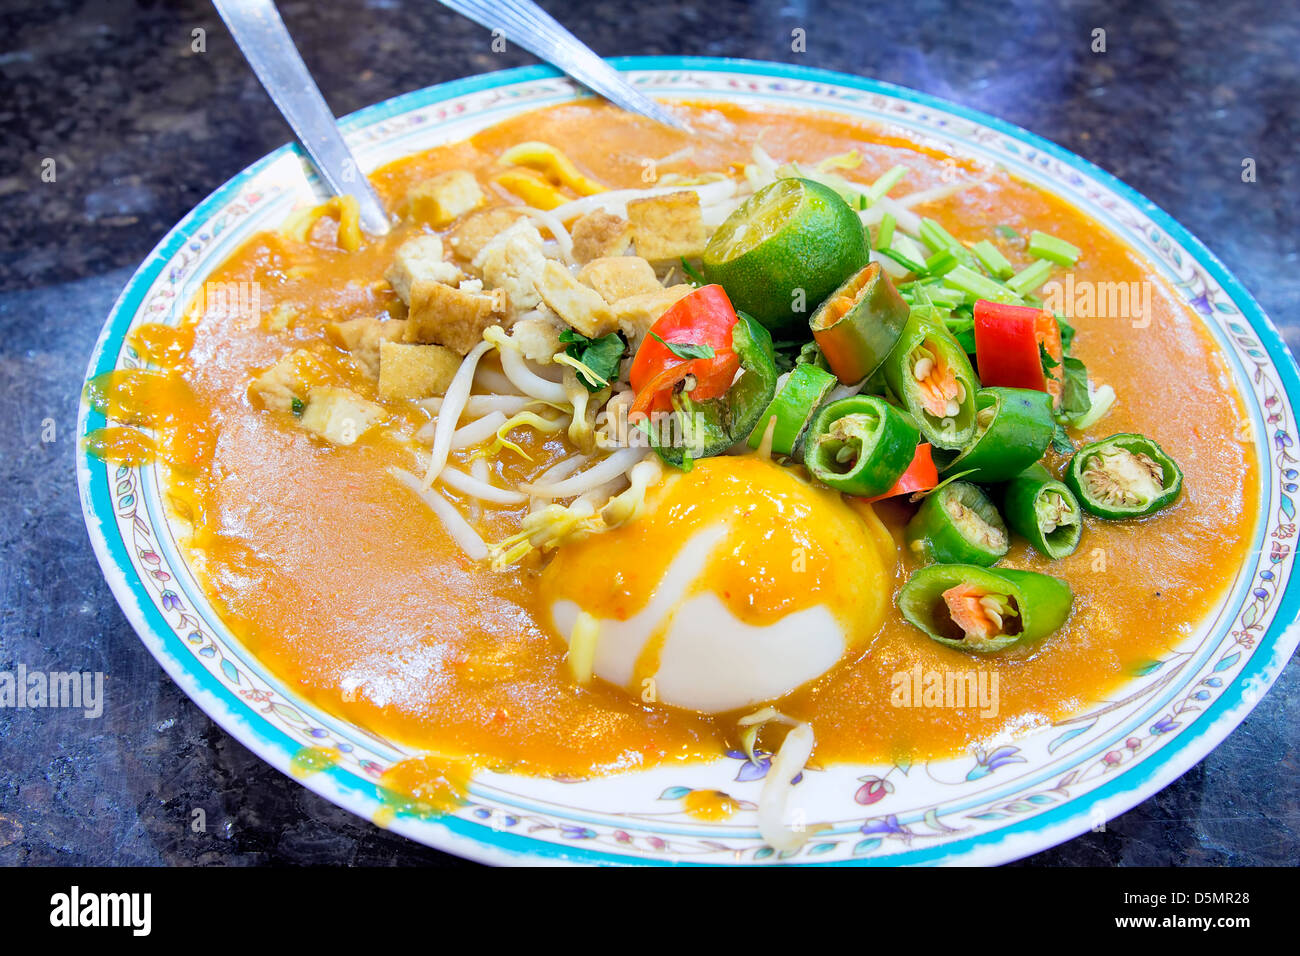 Malay Mee Rebus Noodle Dish Garnished with Cut Chili Peppers Tofu Chinese Celery and Hard Boiled Egg - Stock Image